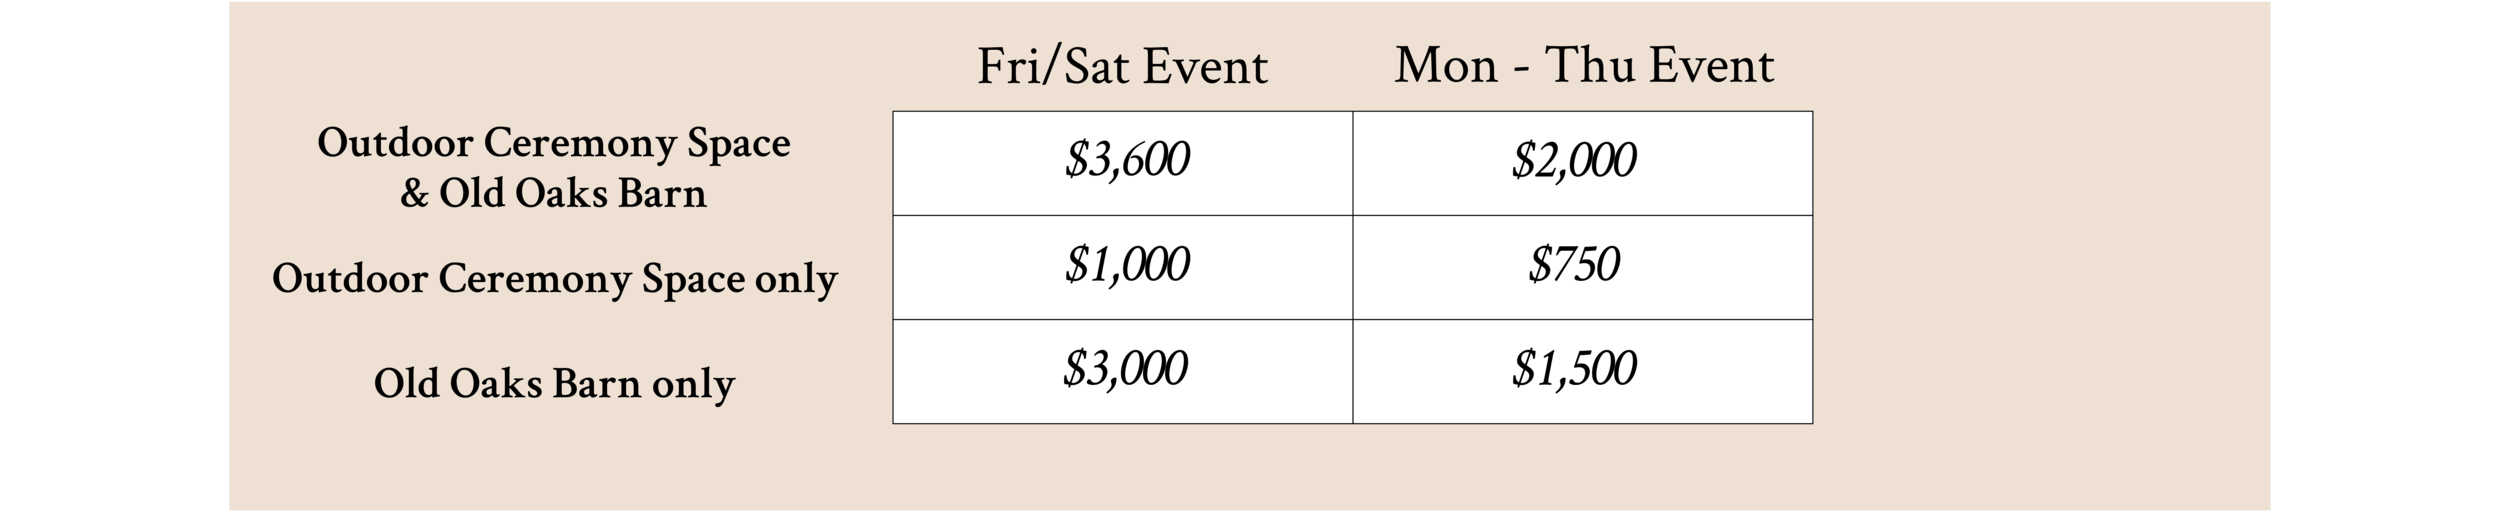 UPDATED pricing 100918.png